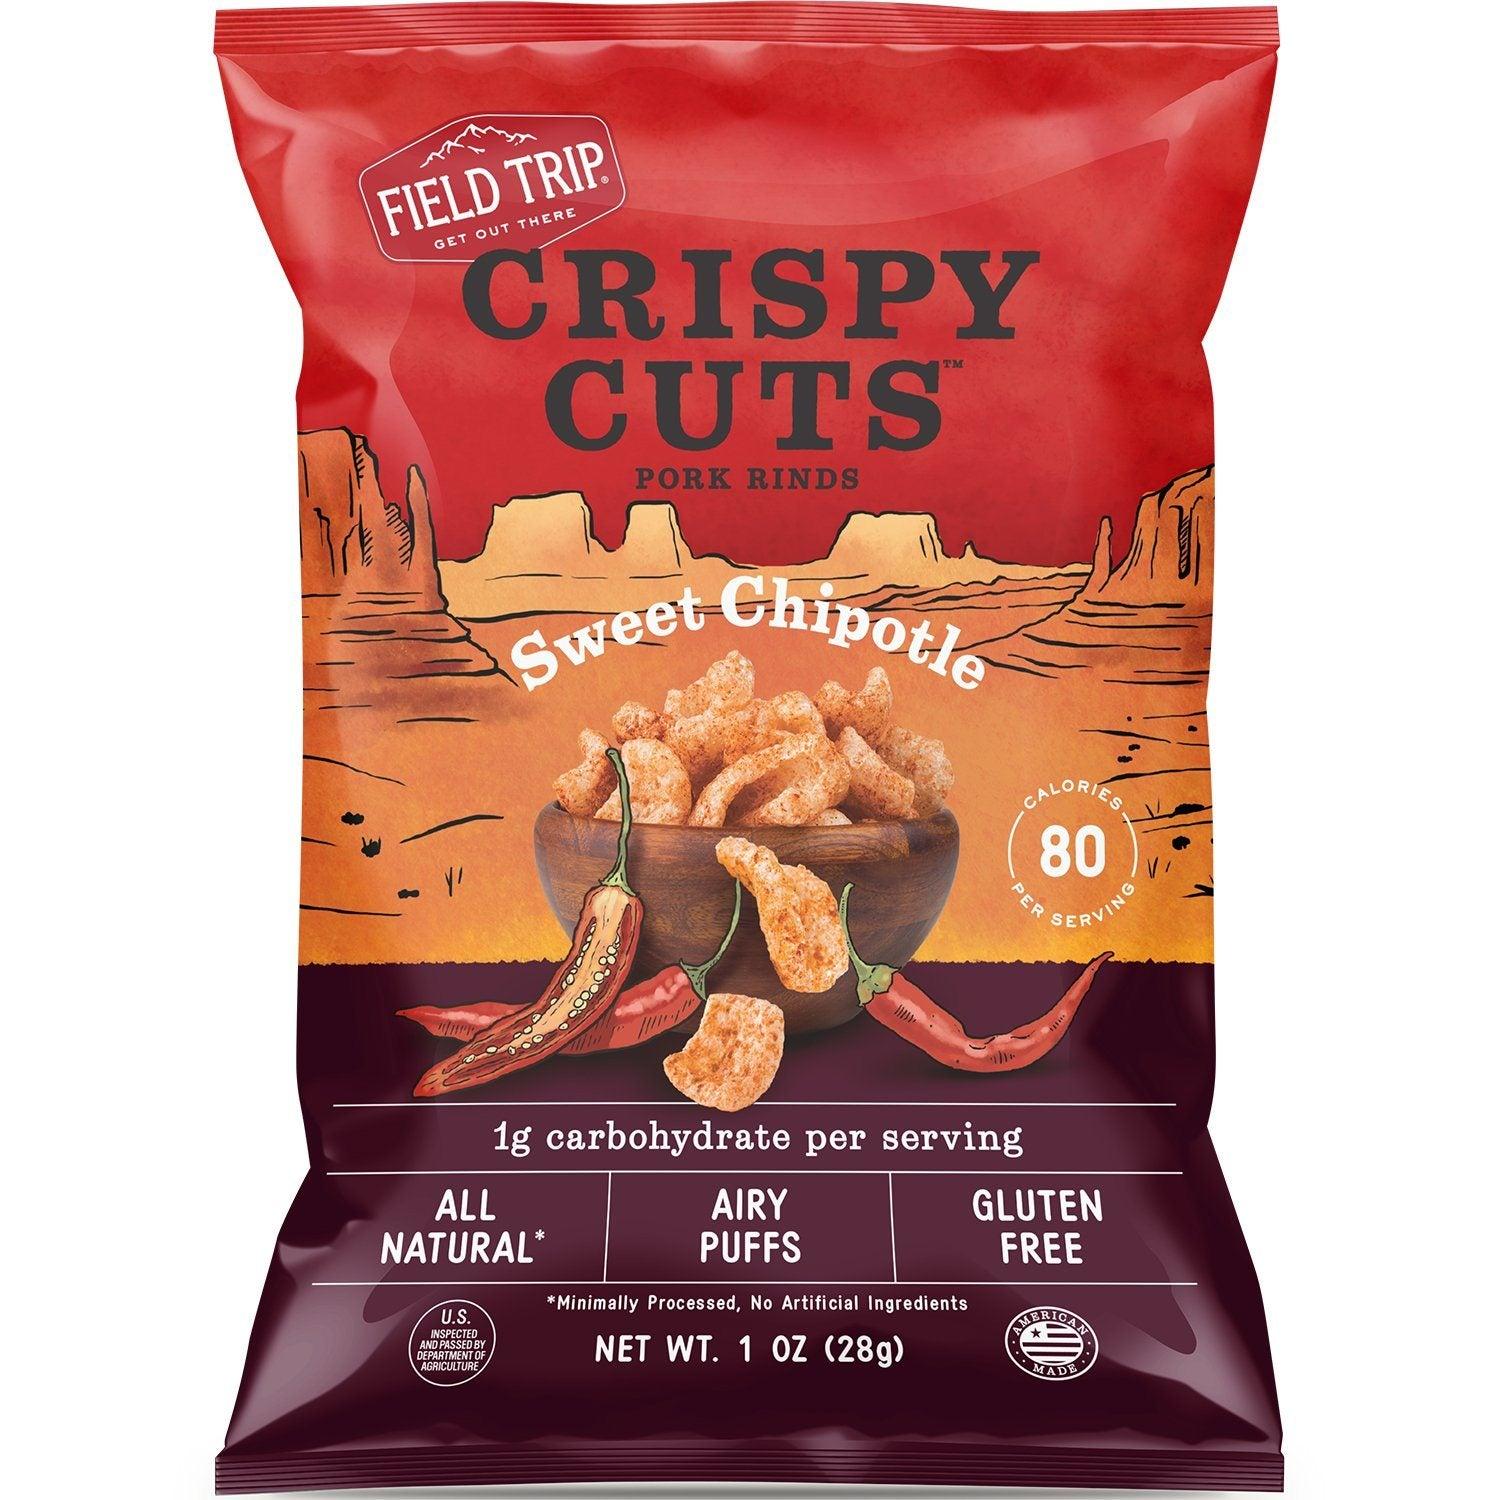 Field Trip Crispy Cuts Pork Rinds Field Trip Snacks Sweet Chipotle 1 Ounce